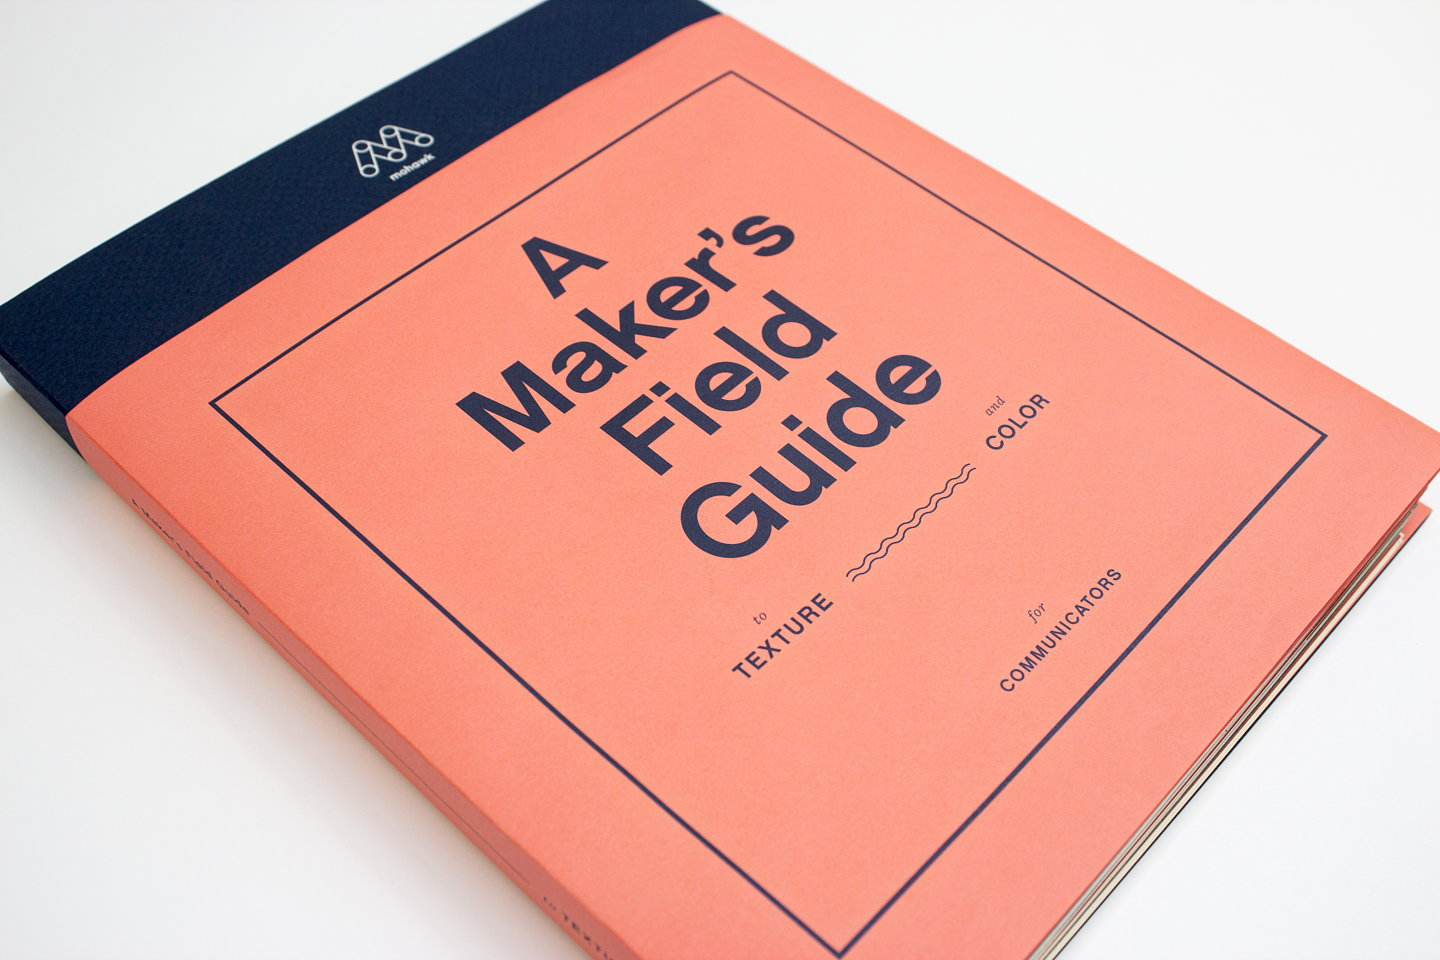 Amazon.com: Customer reviews: A Field Guide to Digital Color